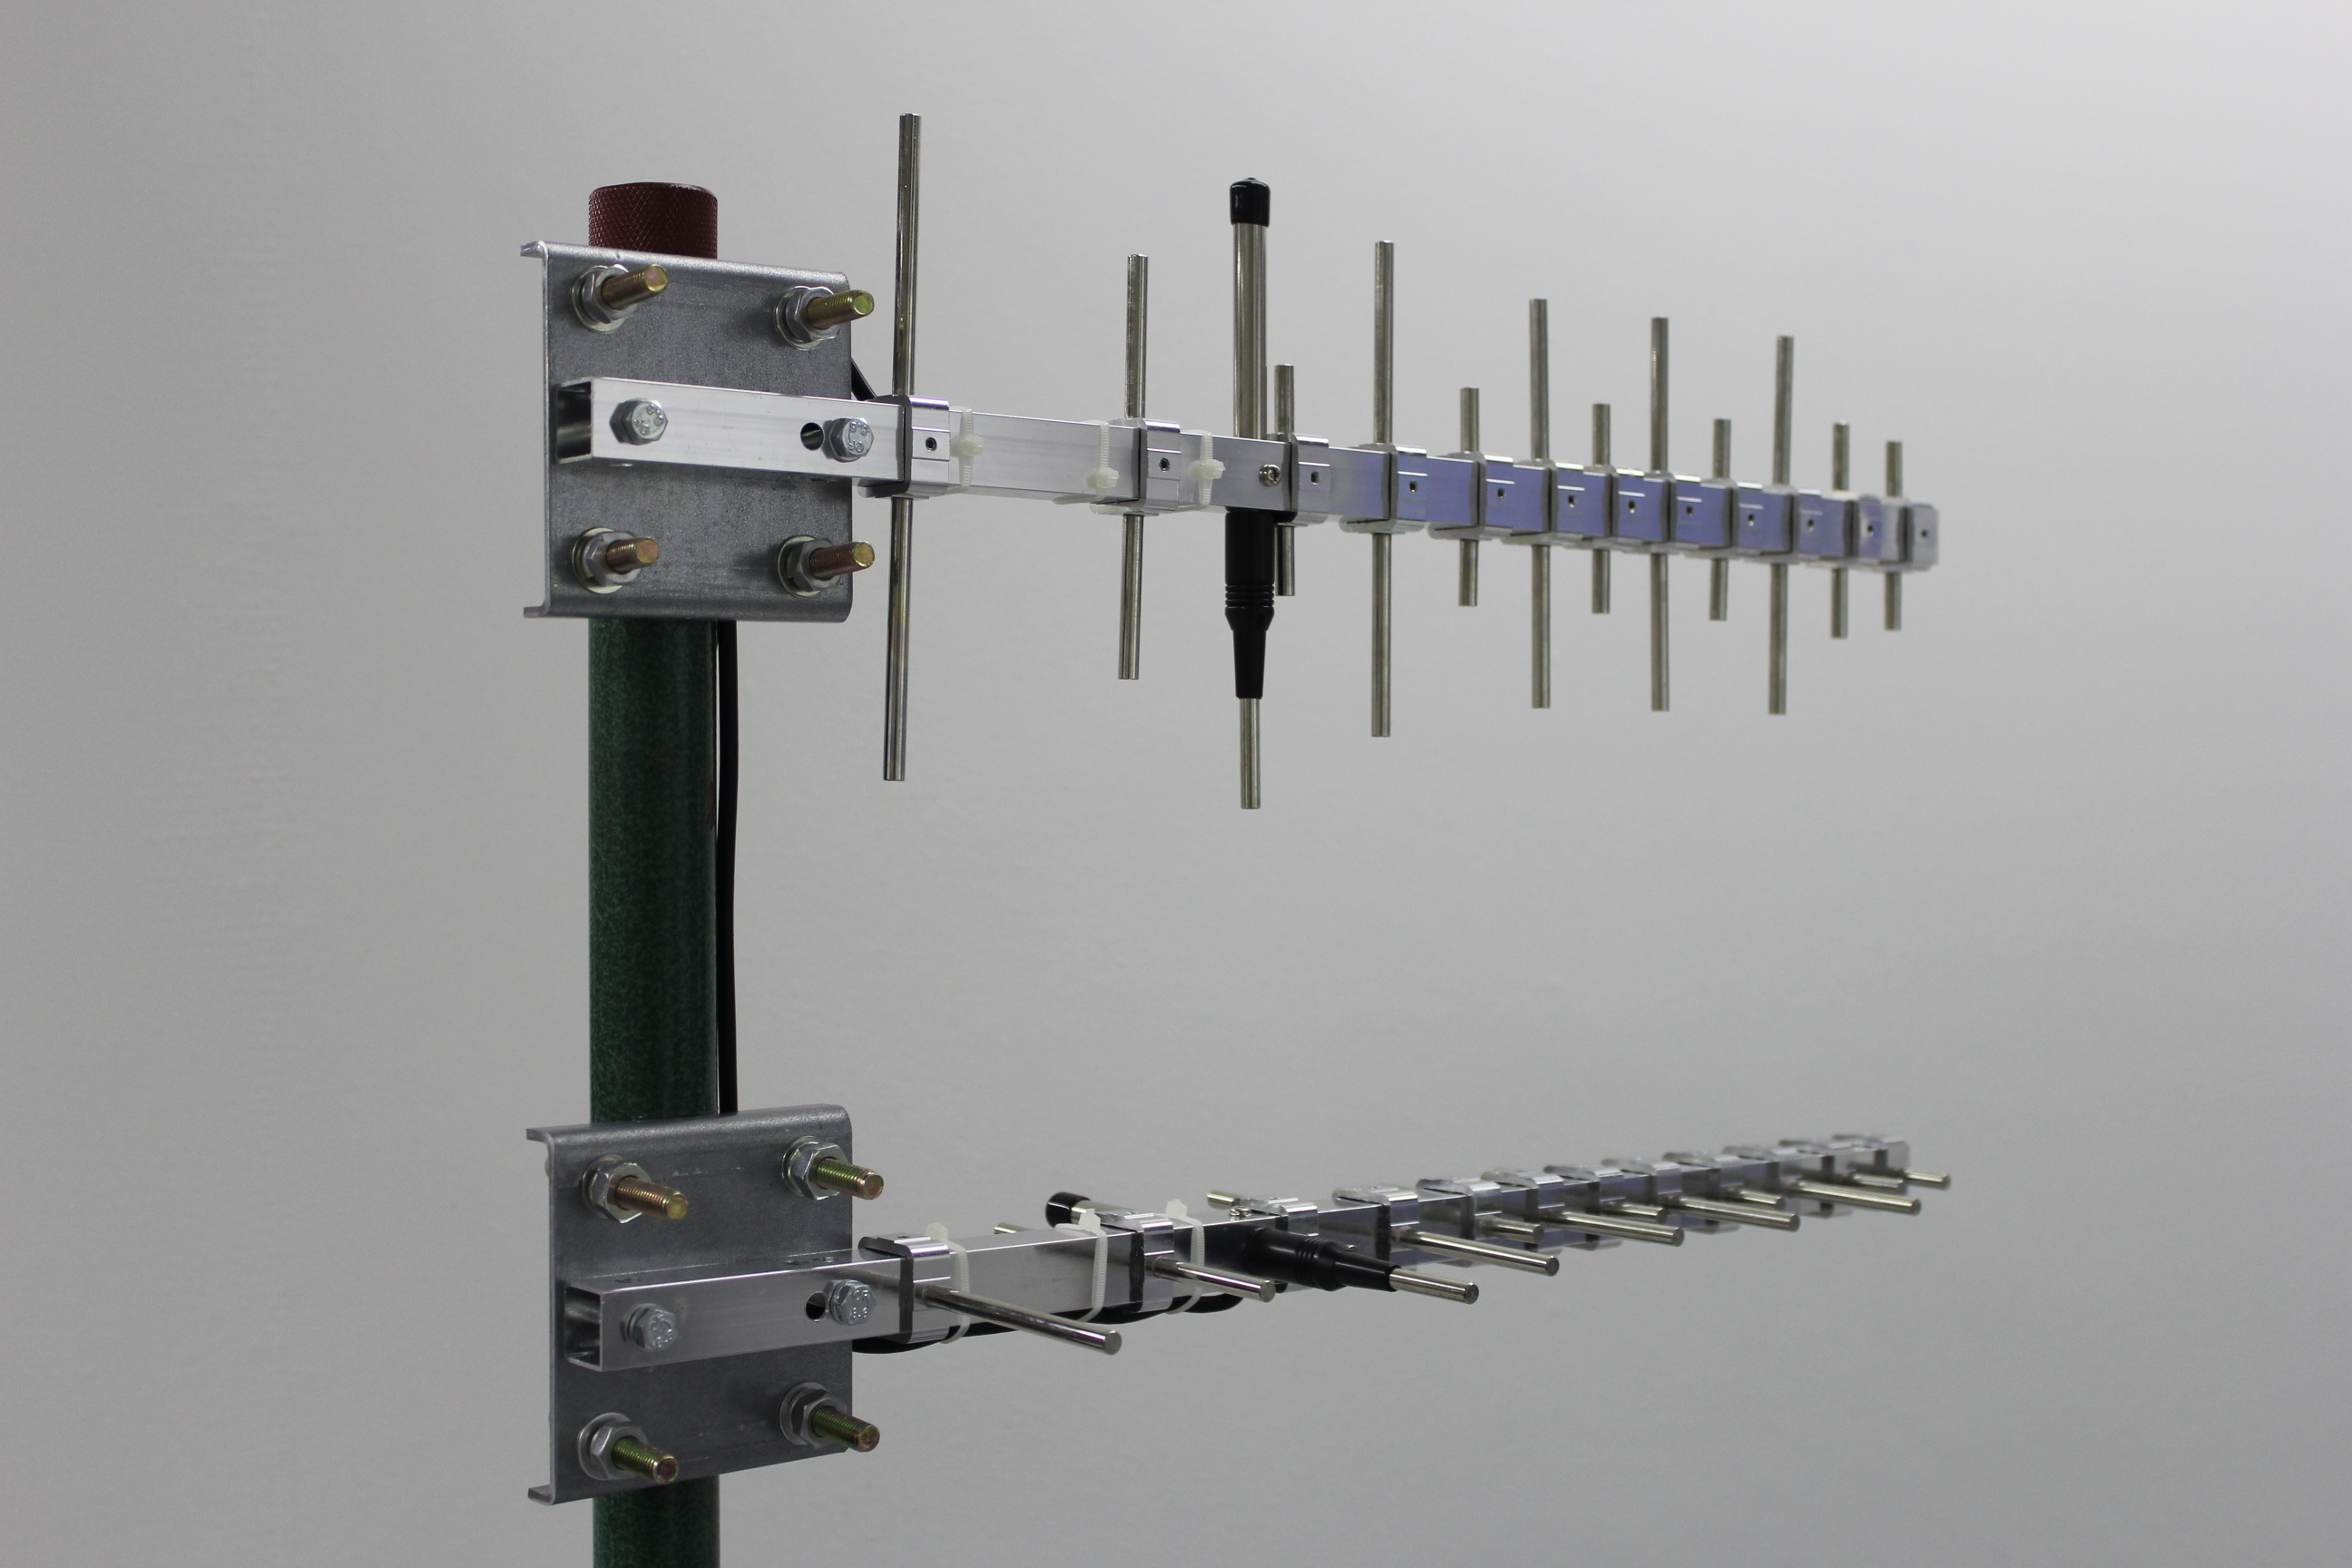 XPOL yagi set for 690-2700 MHz with modem adapters